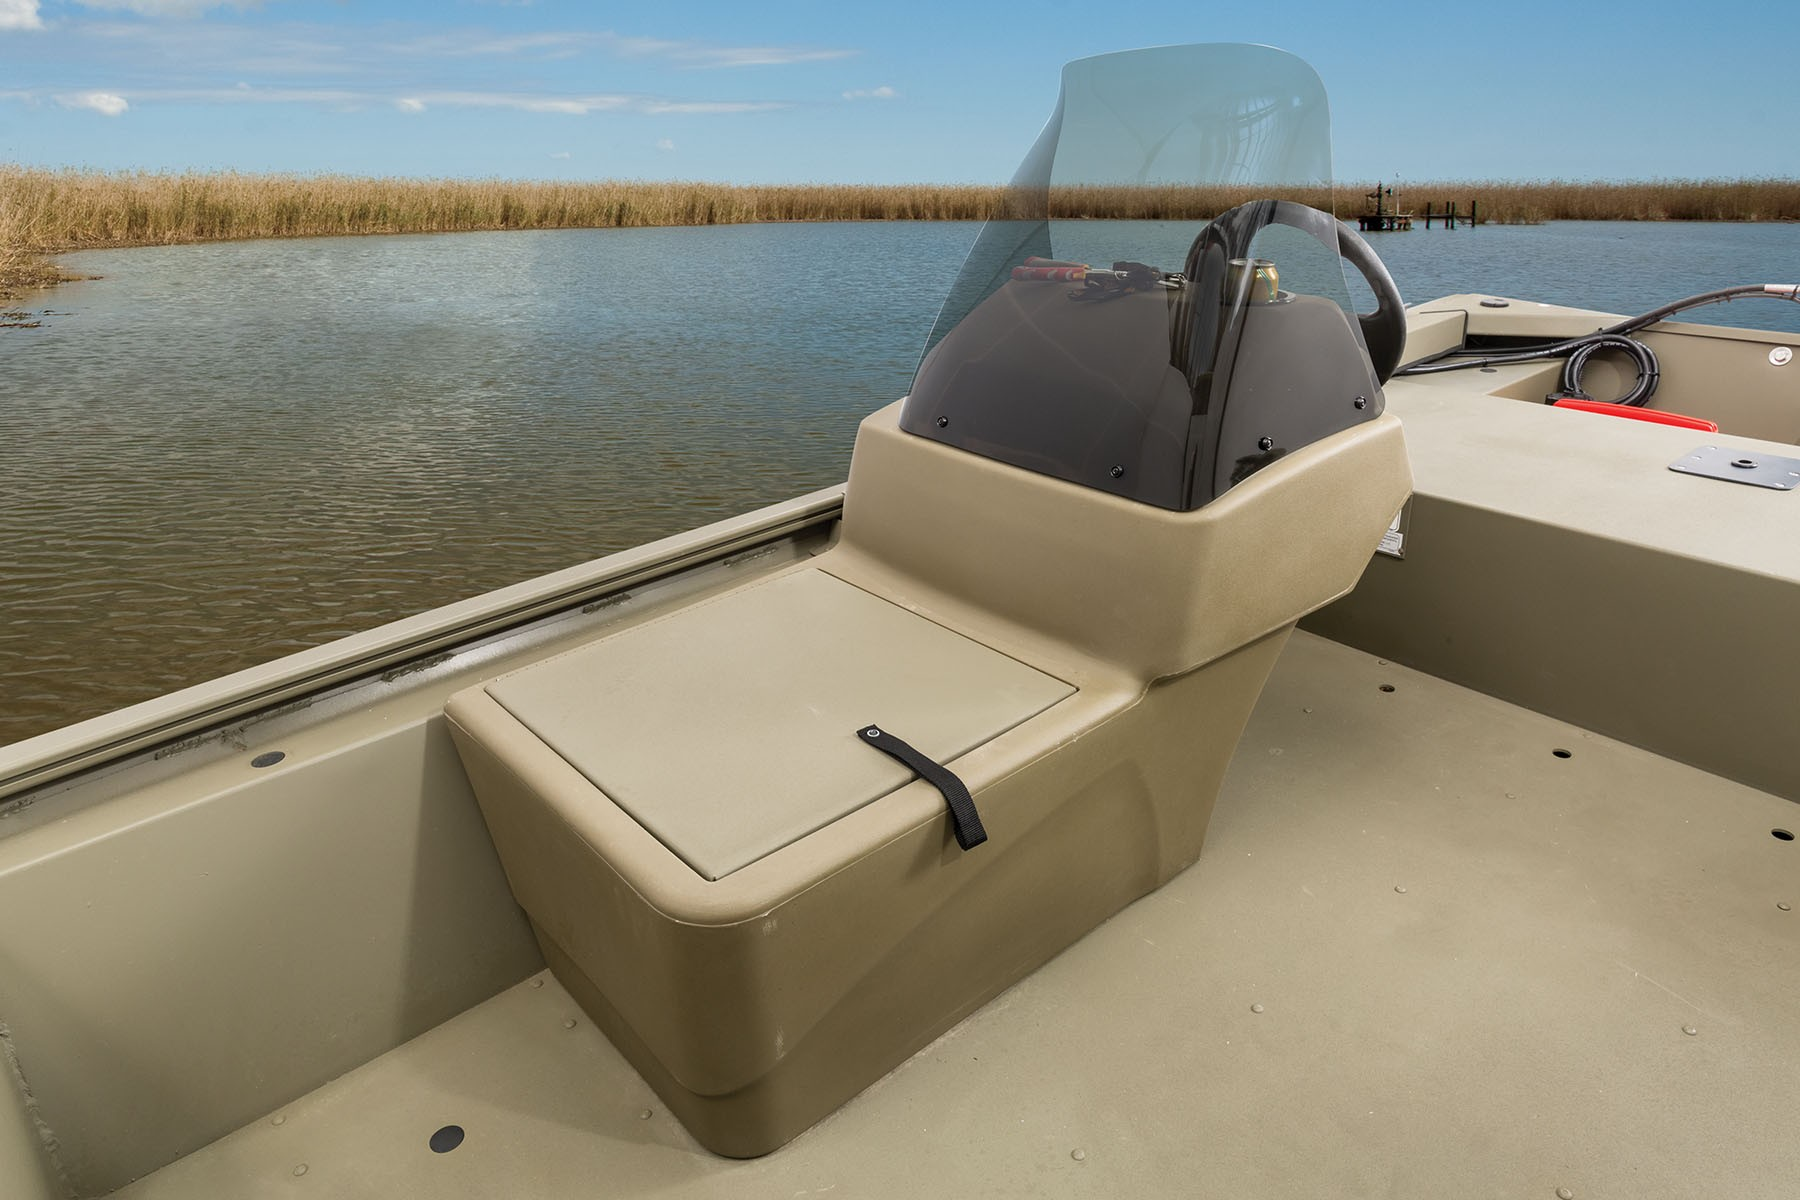 Grizzly 1648 SC - Barcos Grizzly - Tracker - Barcos nuevos